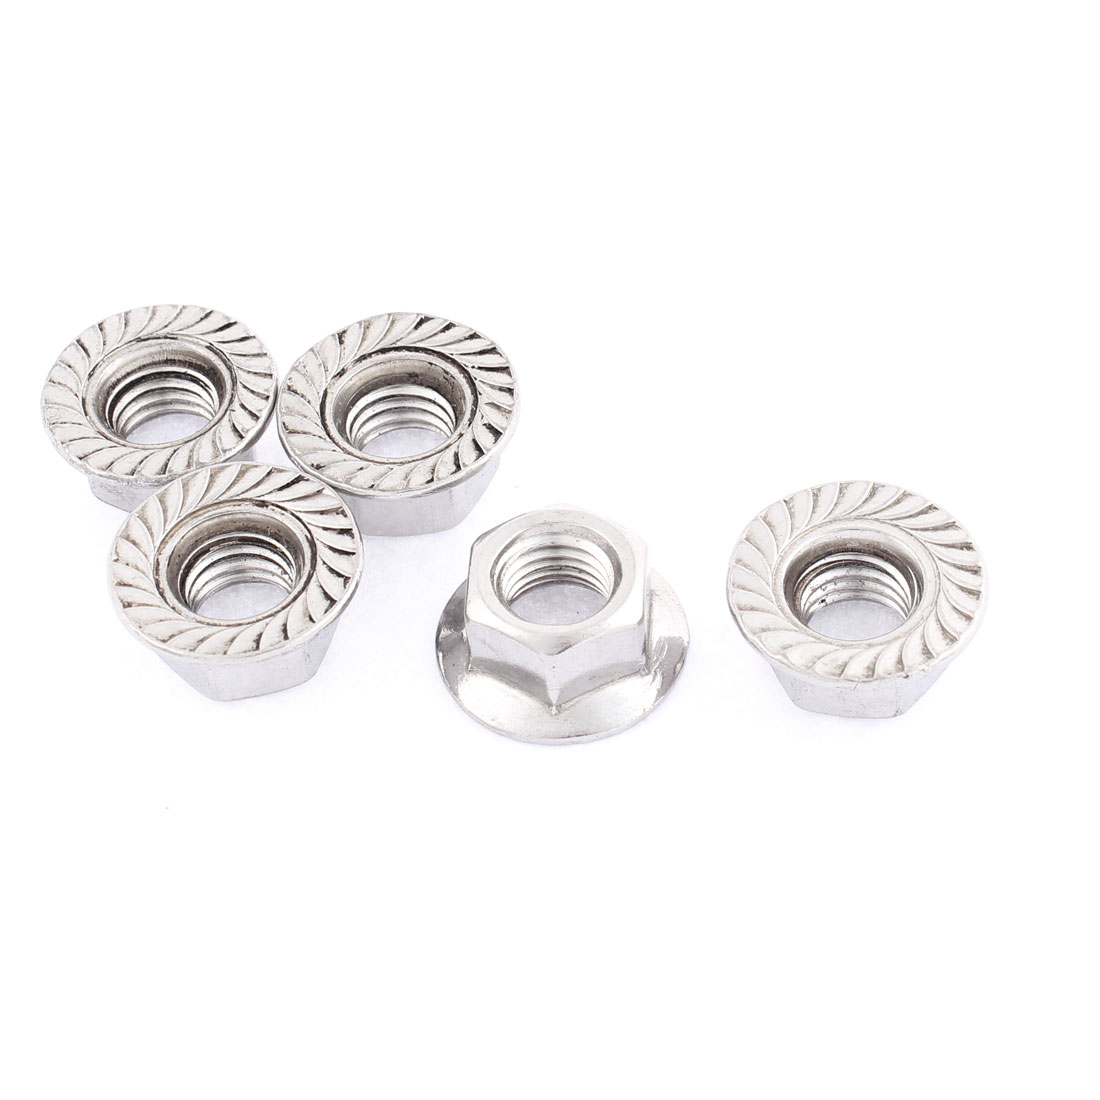 M12 Thread Dia Stainless Steel Hex Hexagon Flange Lock Nuts 5pcs